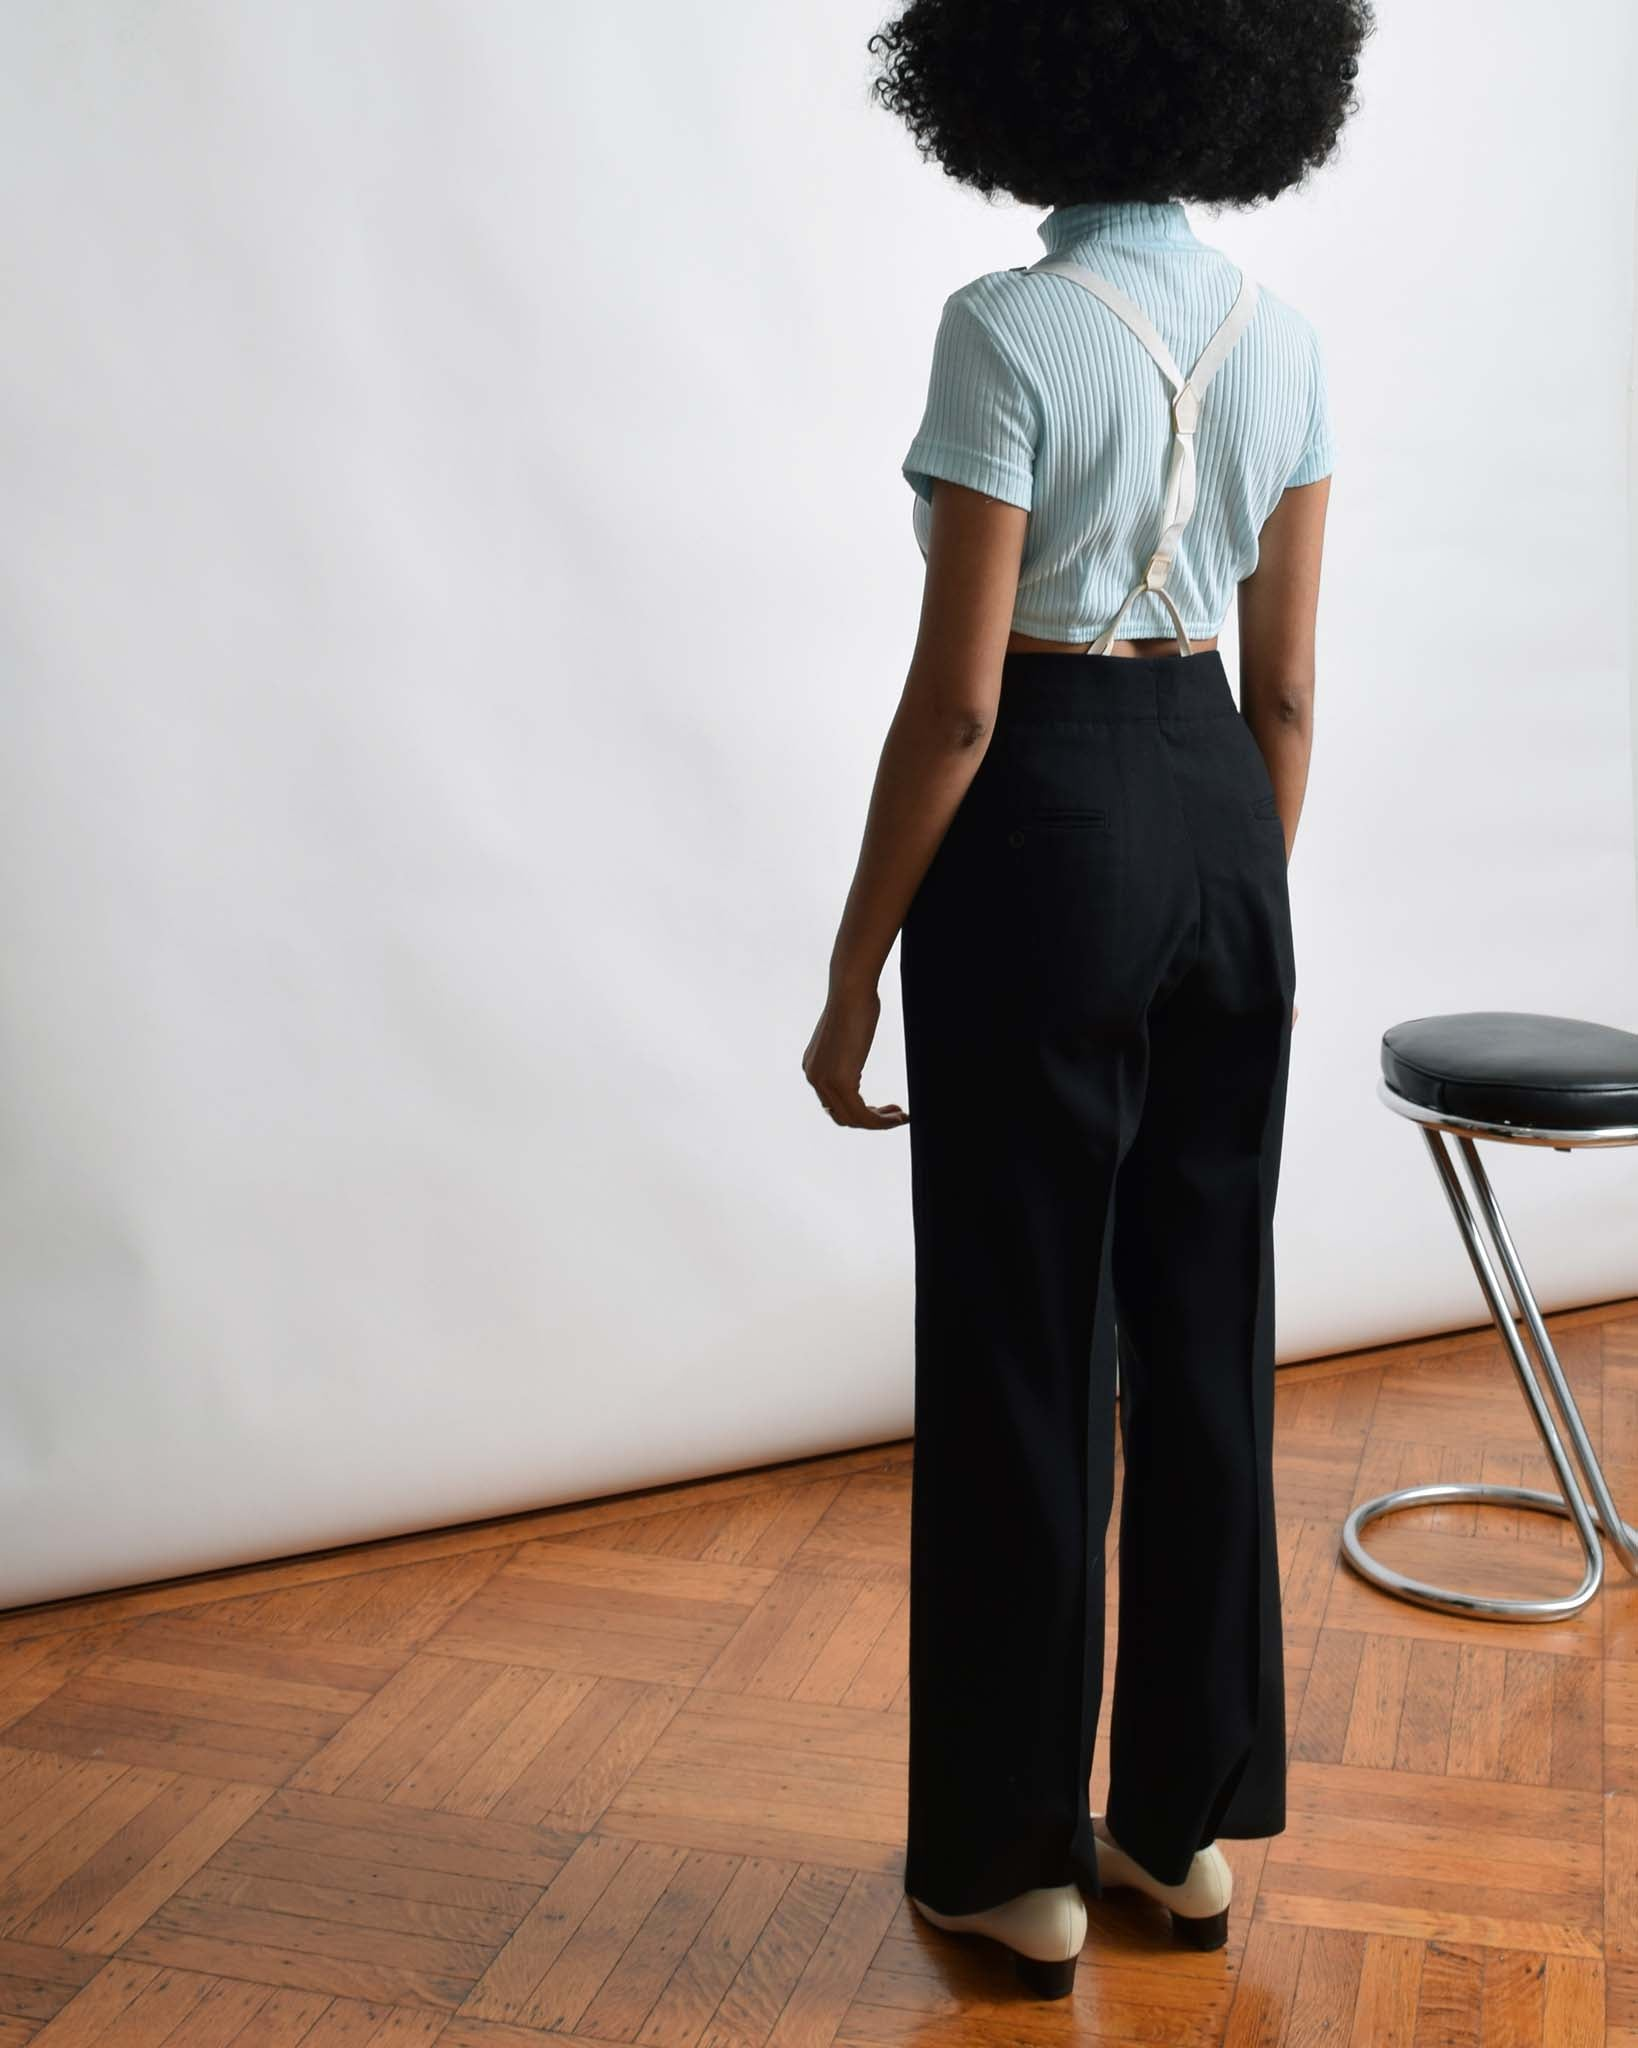 Vintage Black Tuxedo Trousers with Suspenders